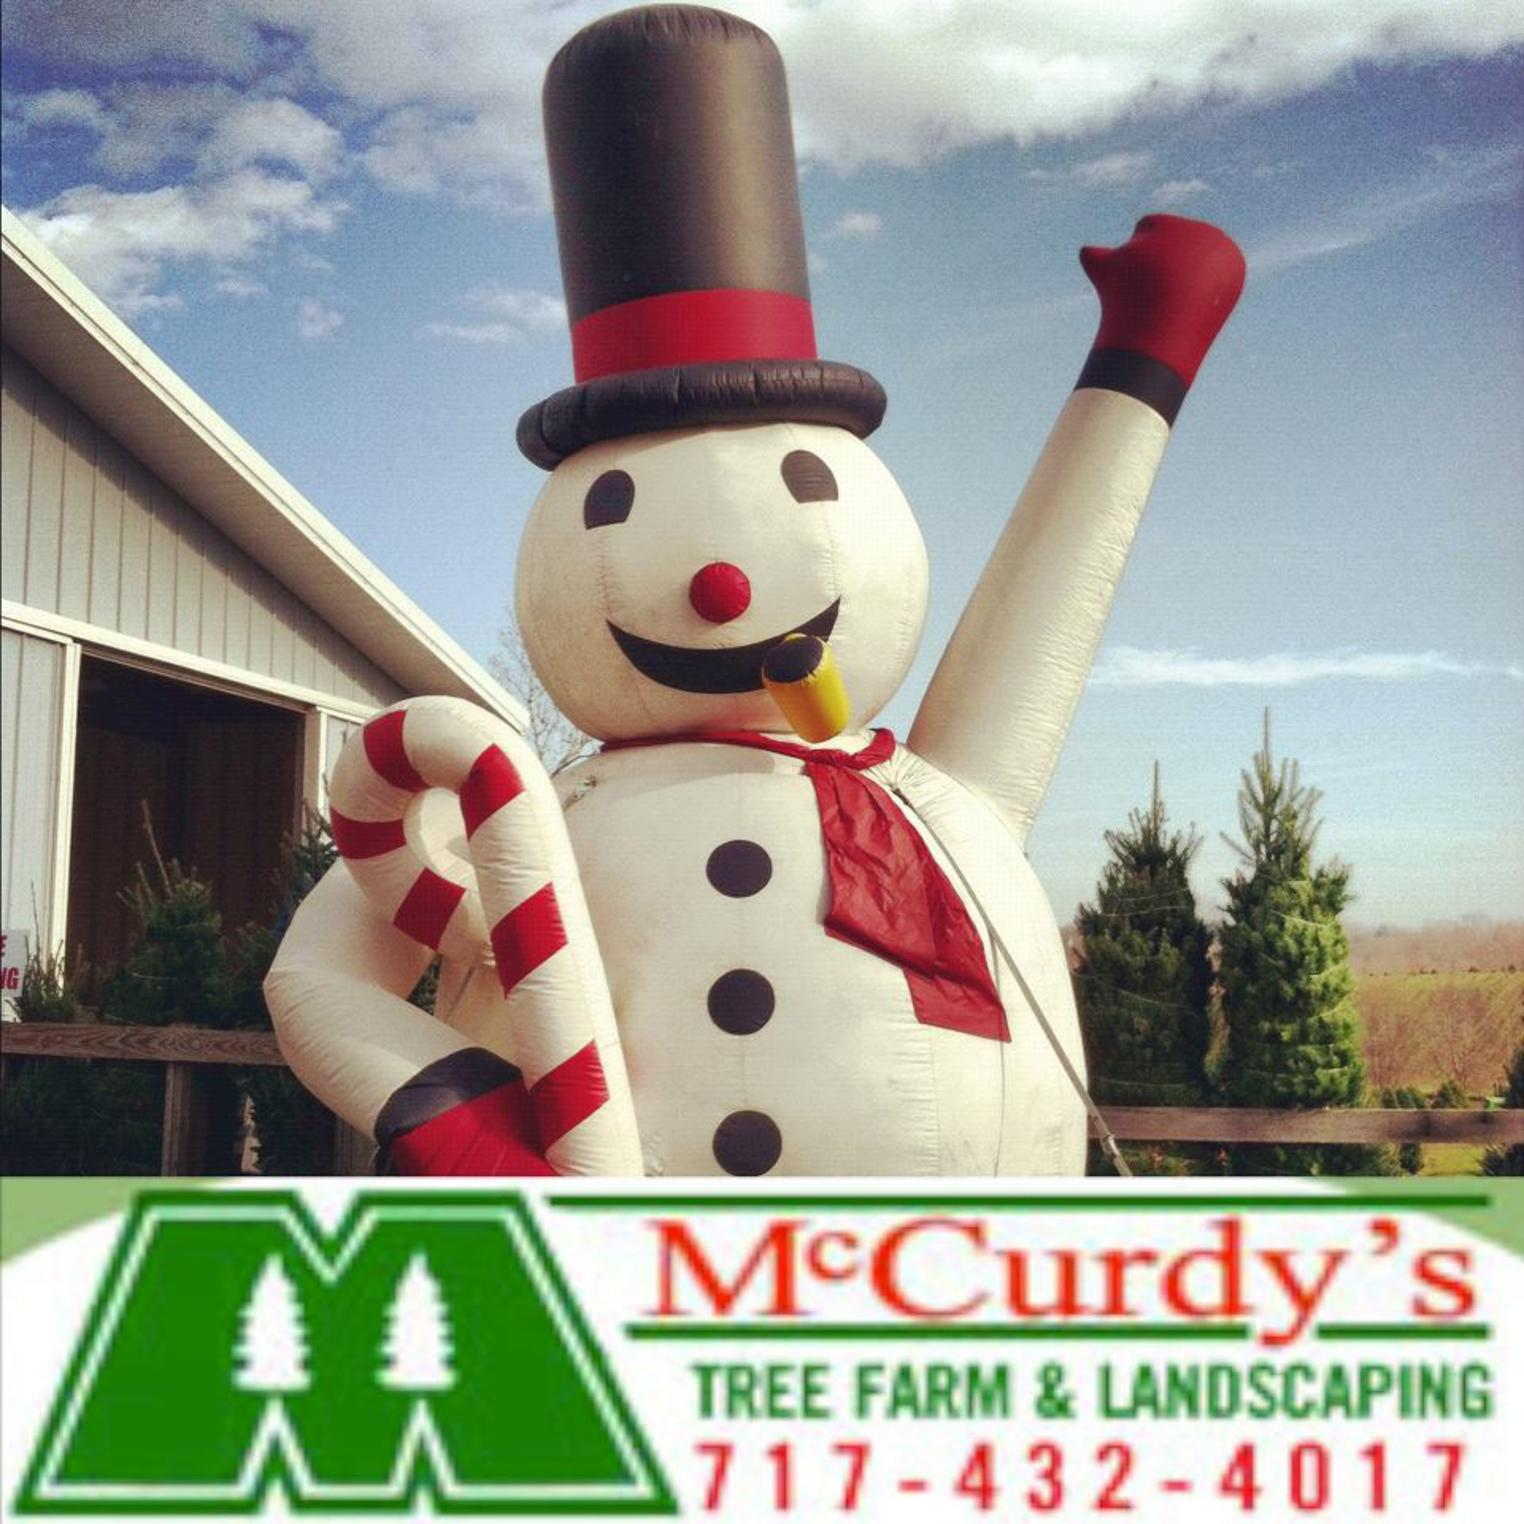 McCurdy's Tree Farm & Landscaping